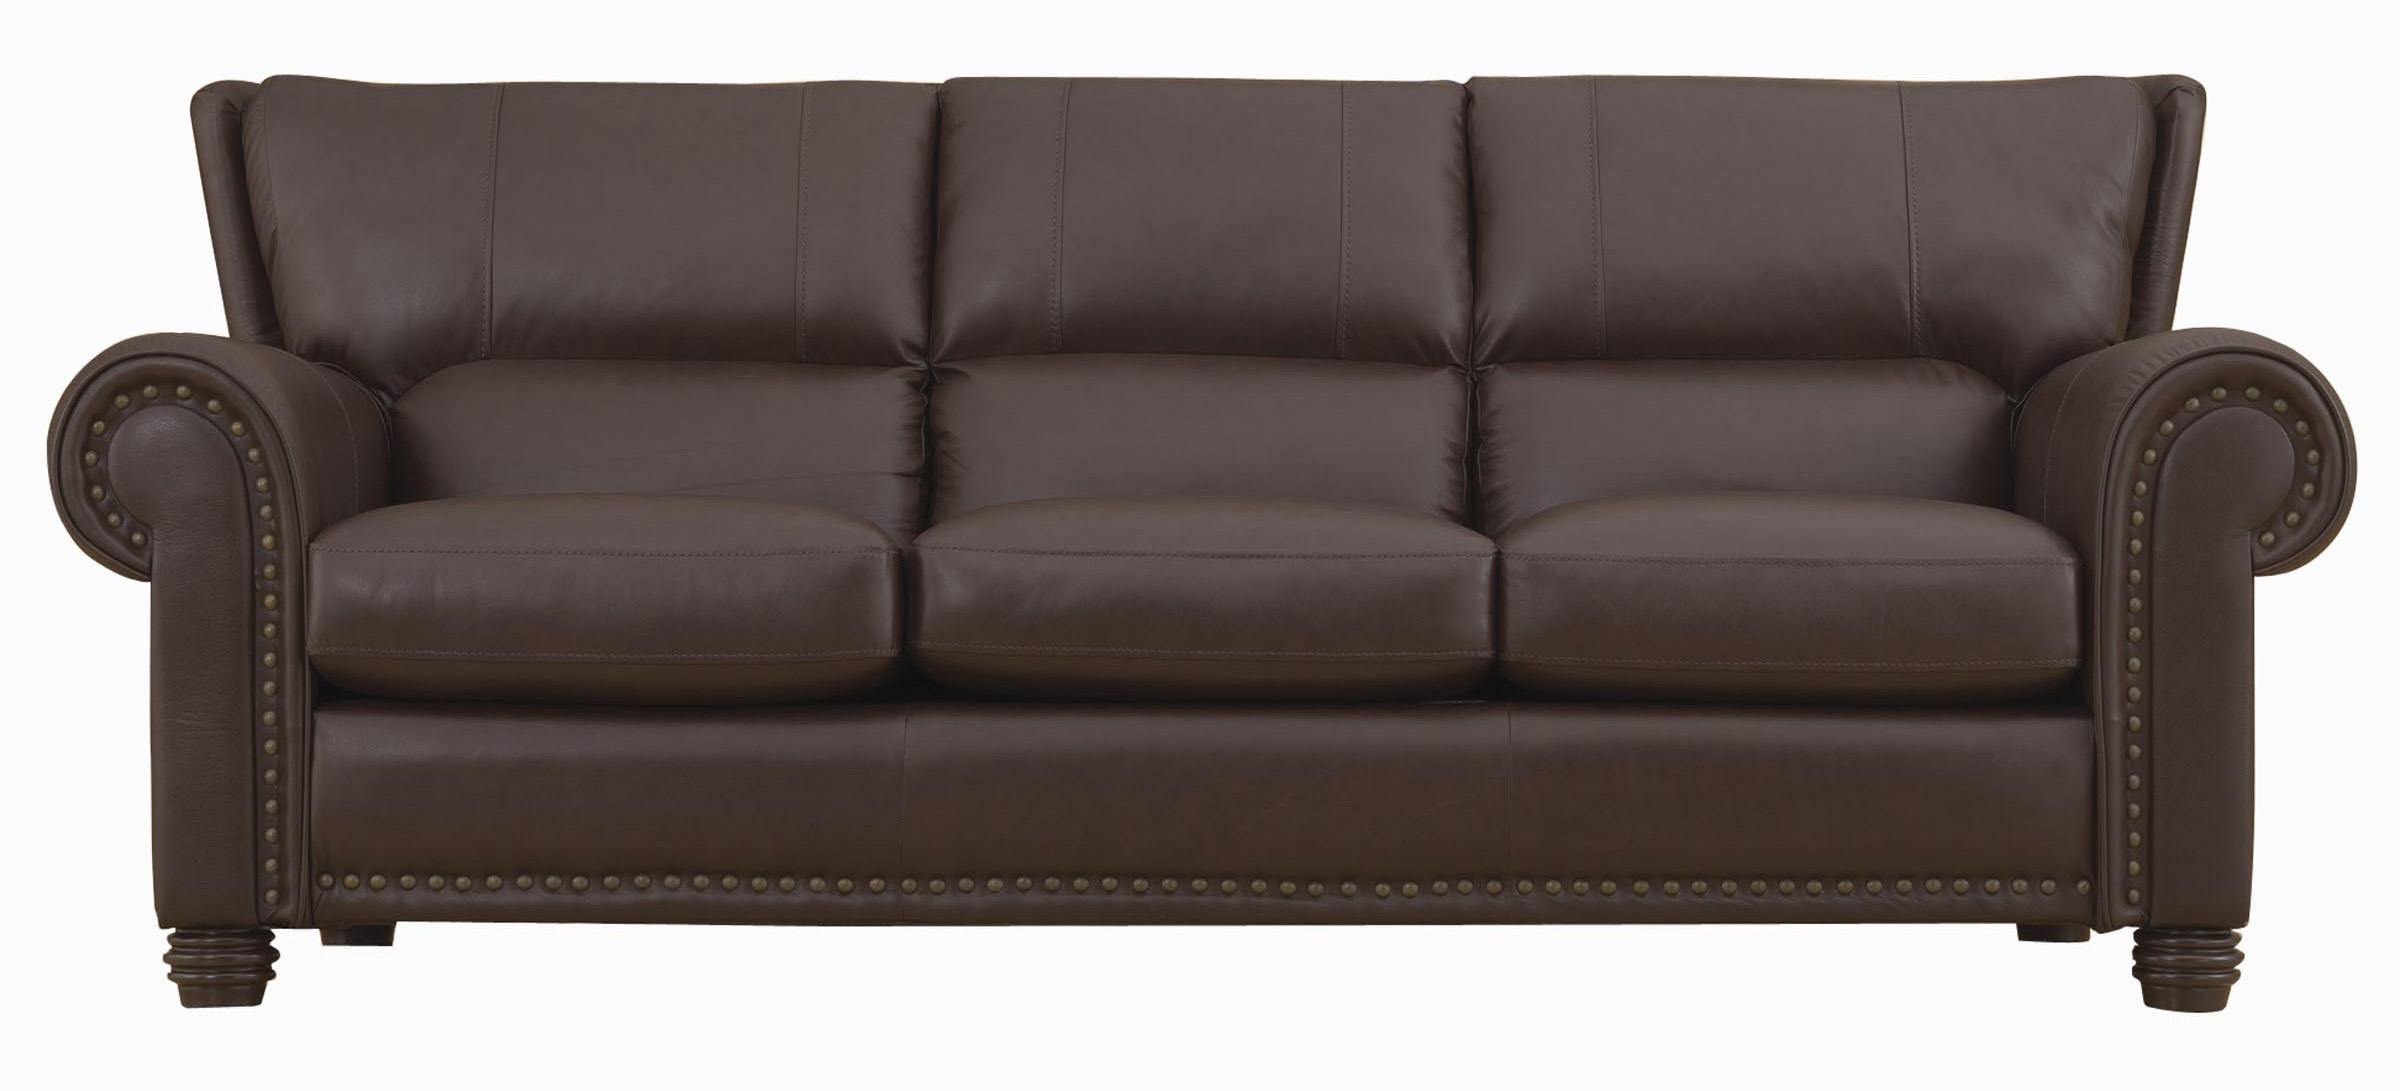 Sofa Windsor – Traditional Style – Jaymar Collection In Most Current Windsor Sofas (View 9 of 20)